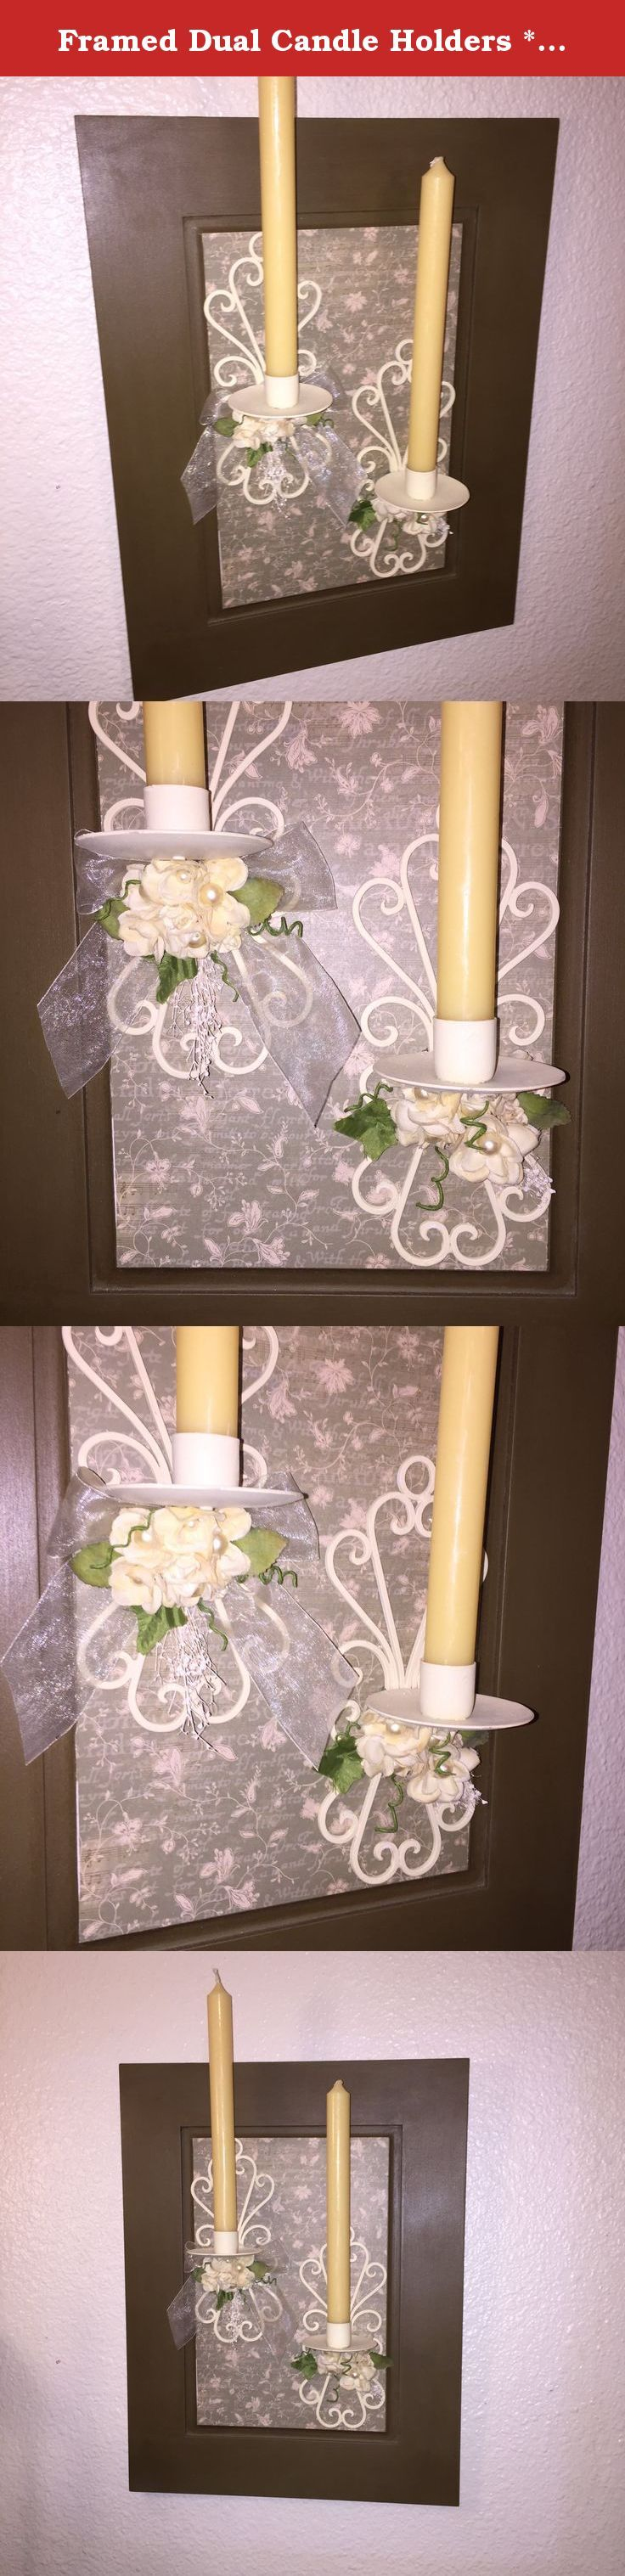 Framed Dual Candle Holders **FREE Shipping**. Your home would benefit from candlelight dancing across the walls from this up-cycled solid wood cabinet door. A striking home decor accessory in green and cream with 2 swirly candleholders embellished with romantic cream roses, sparkly pearls, ribbons and delicate baby's breath. This custom designed wall hanging will fit into most design styles from traditional to eclectic. Candles are included with purchase. The wall decor represents the…